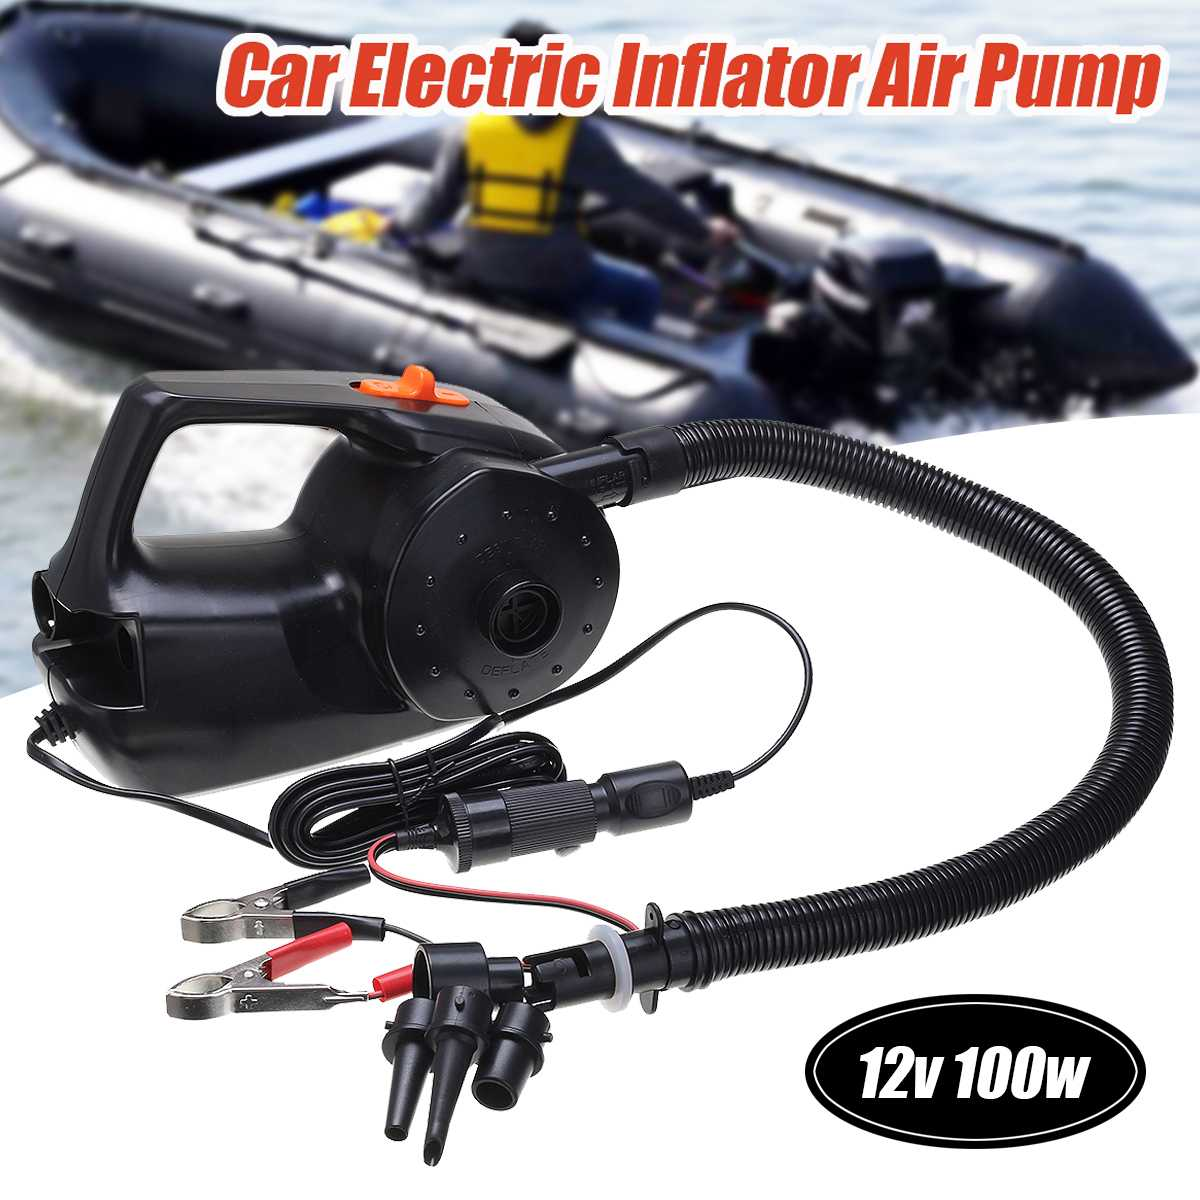 12V 100W Car Rechargable Pump Electric Inflatable Air Pump For Kayak Boat Swimming Pool Air Cushions Ball Auto Portable Blower